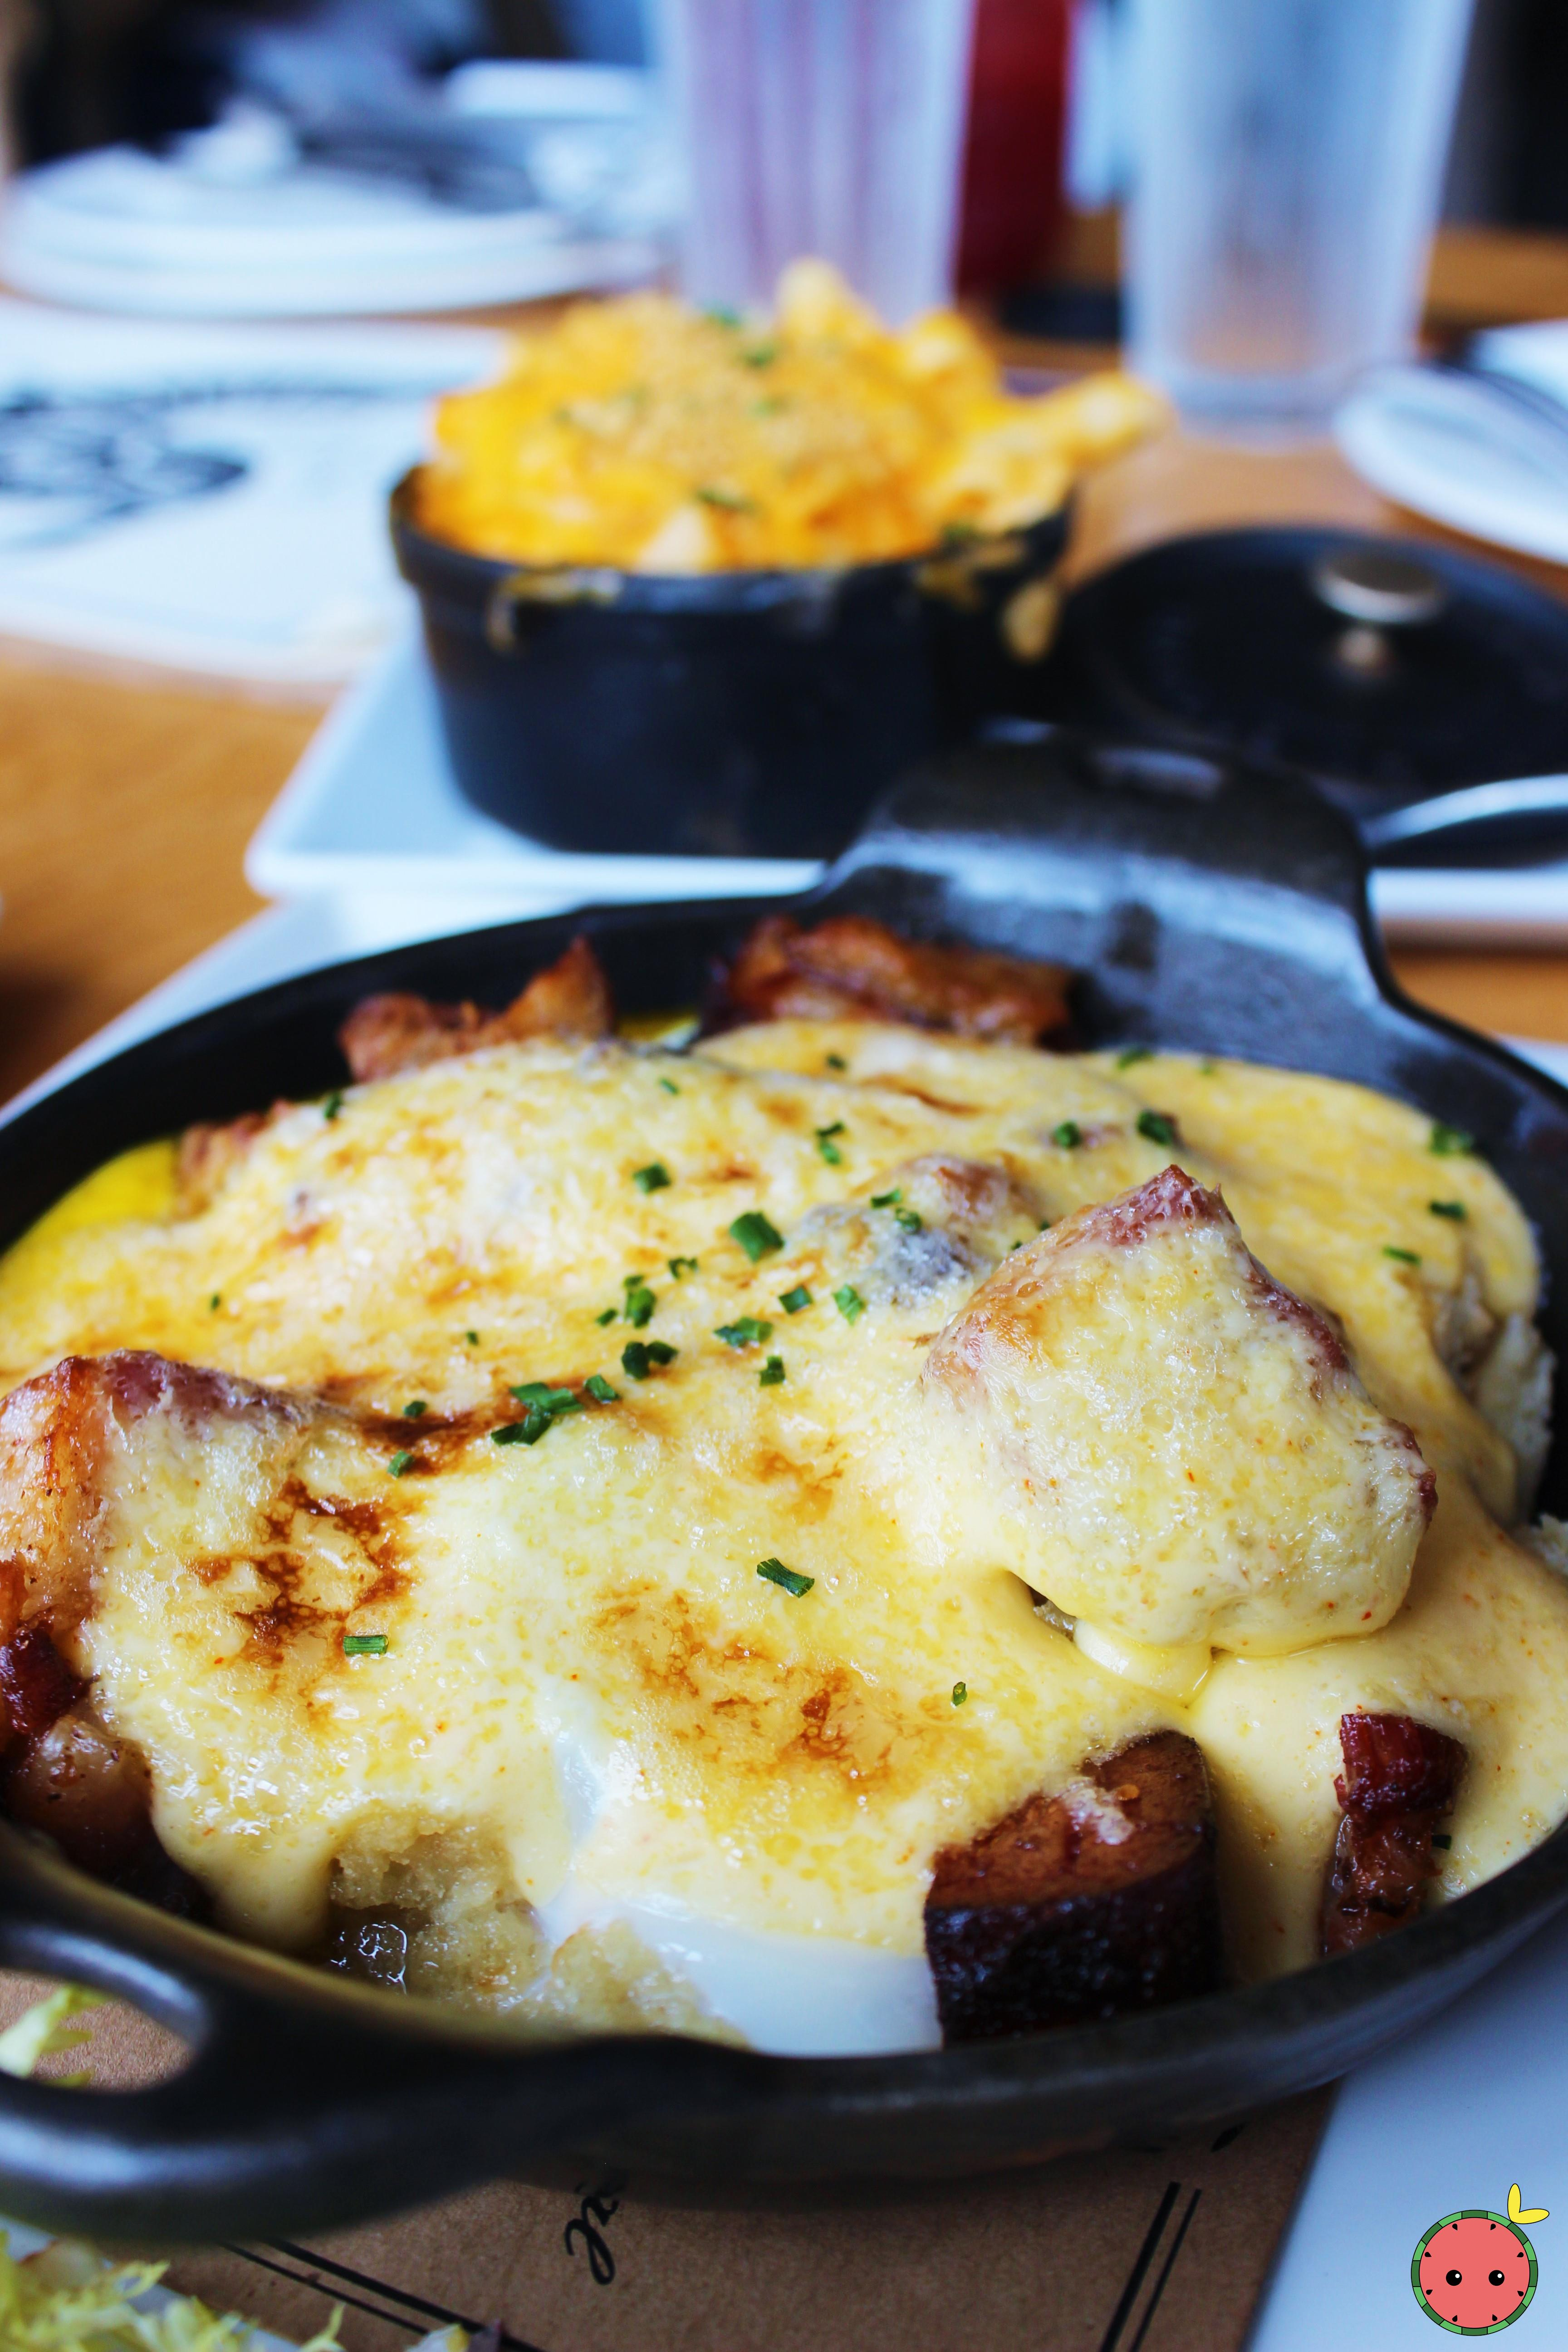 BLT benedict cast iron casserole with buttermilk biscuit crumble, soft poached egg, house-cured baco